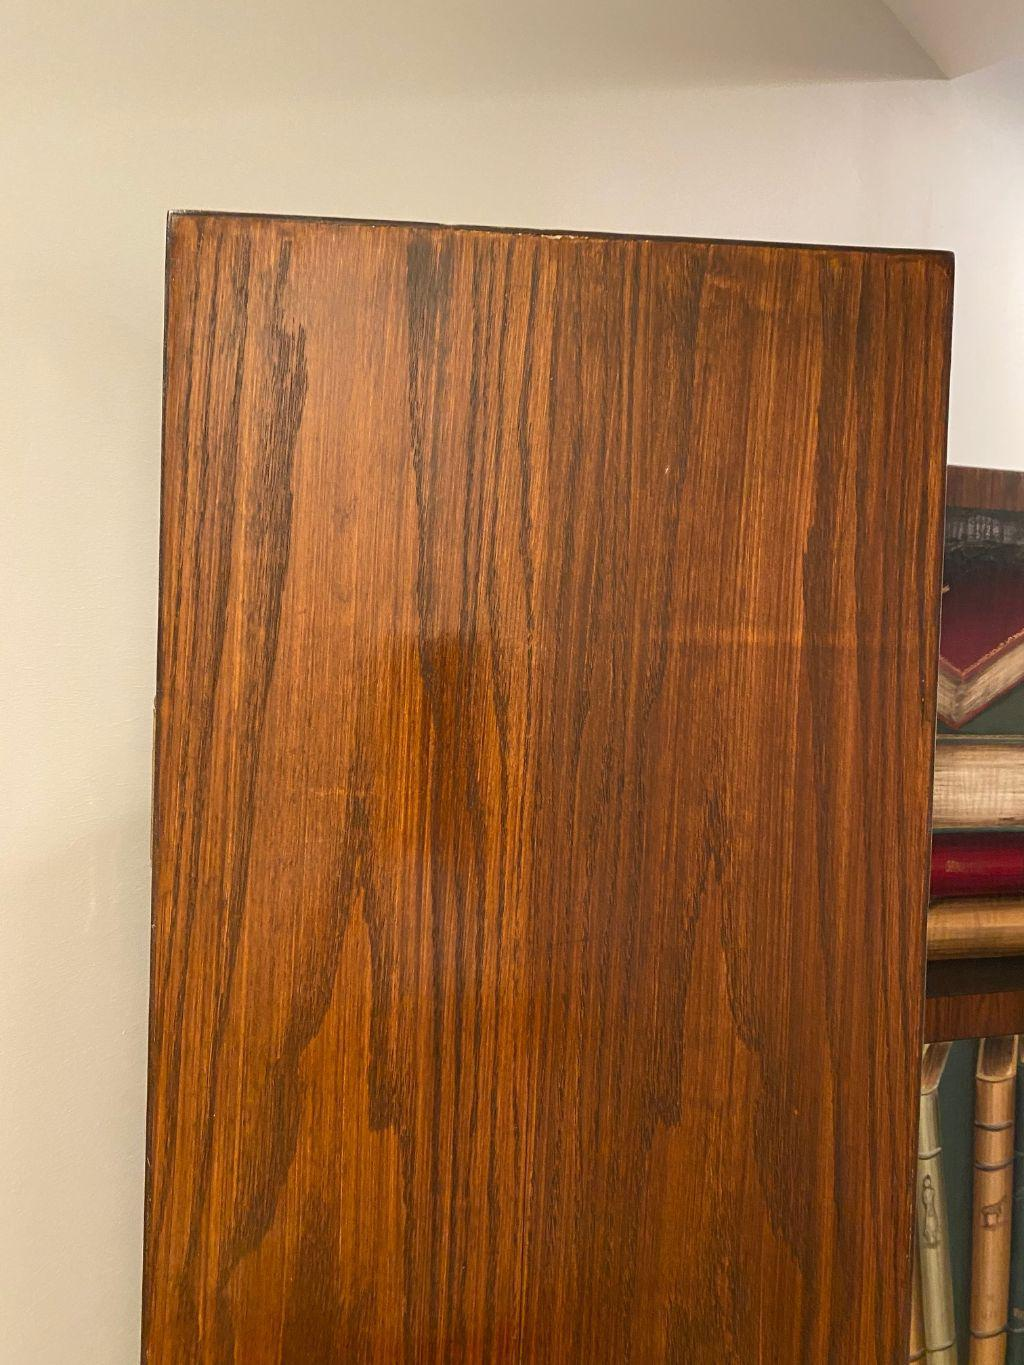 Late 20th Century Solid Wood Library Bookshelf Room